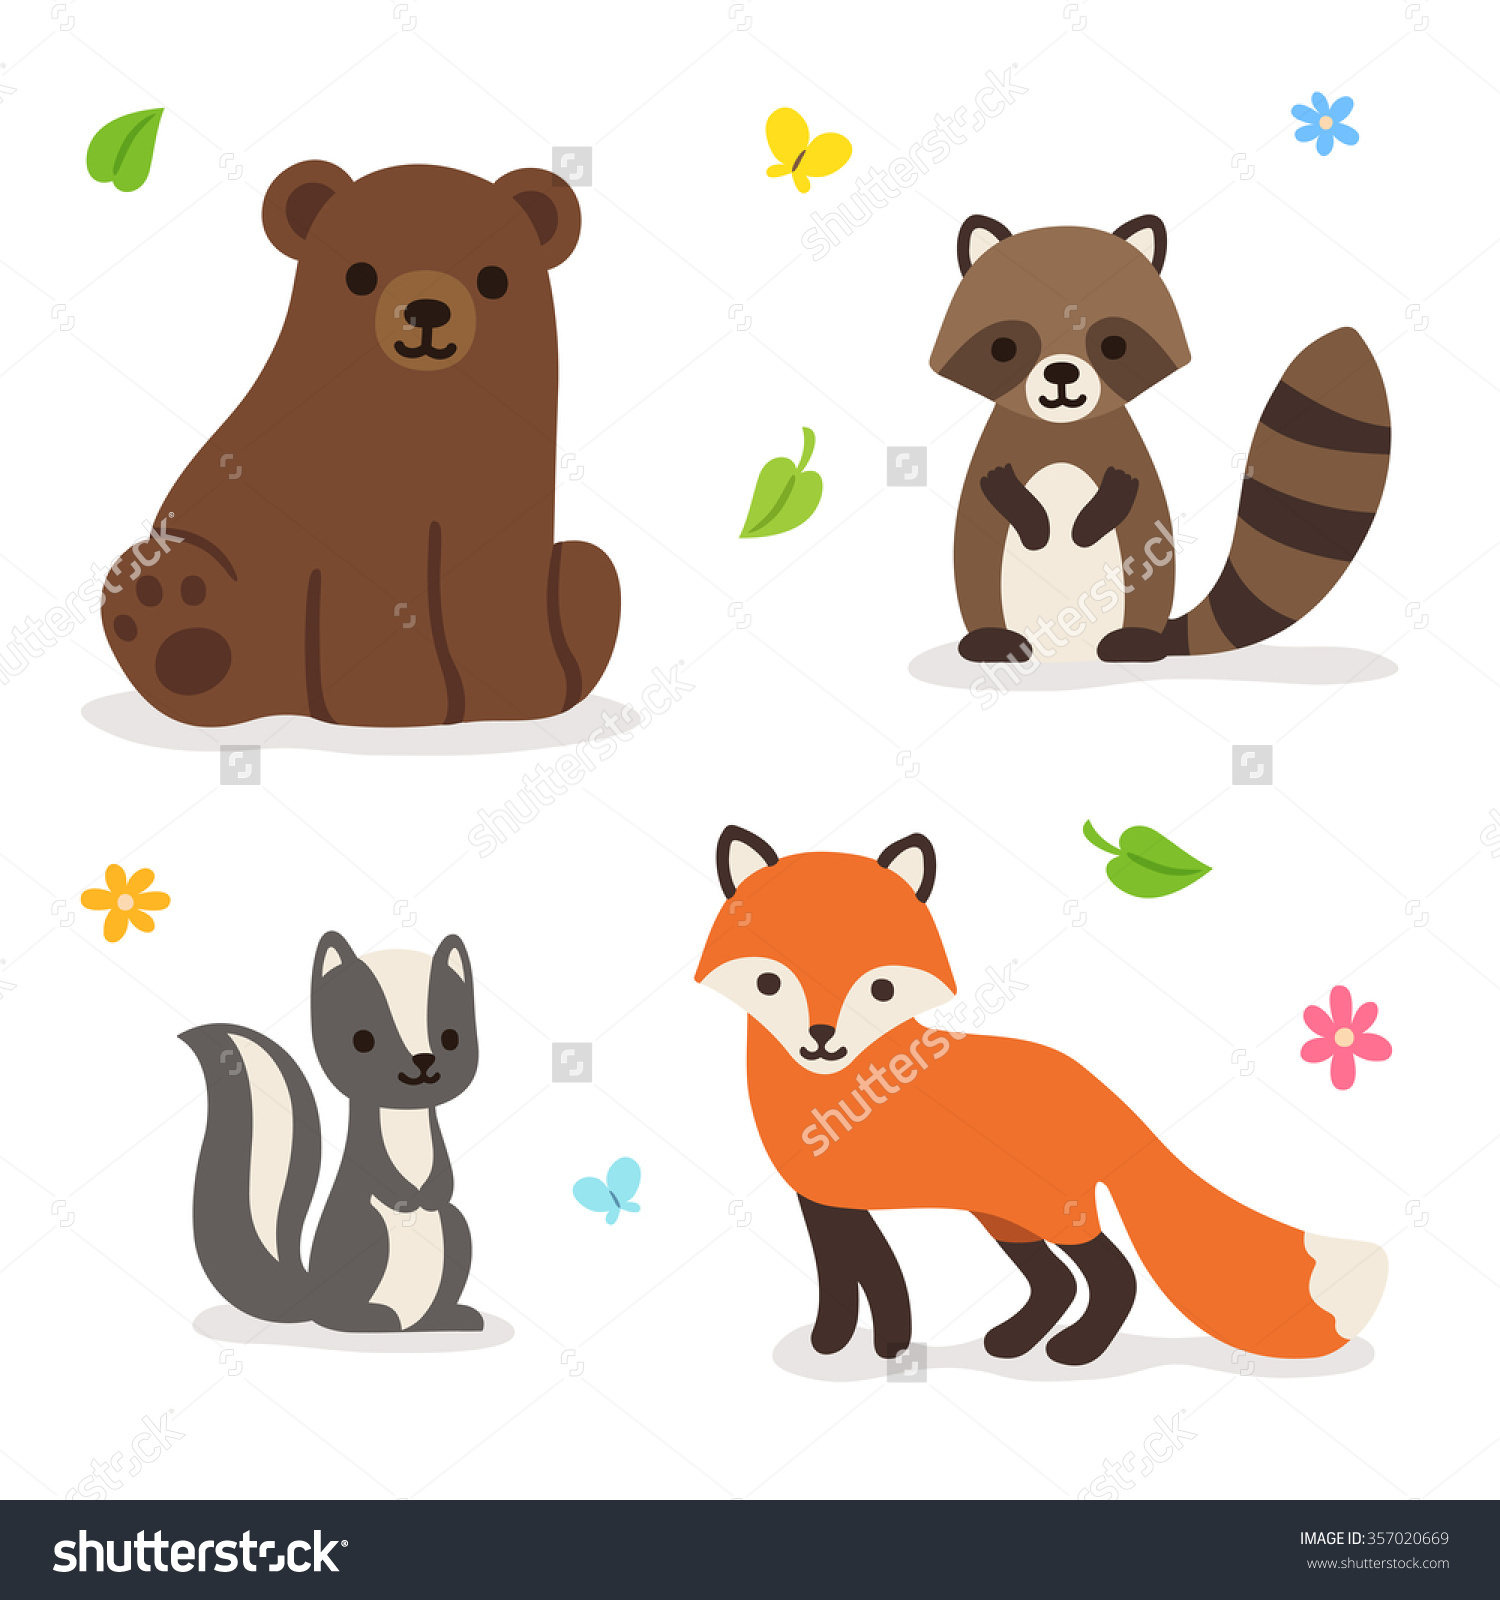 Raccoon Cartoon Drawing at GetDrawings.com | Free for personal use ...